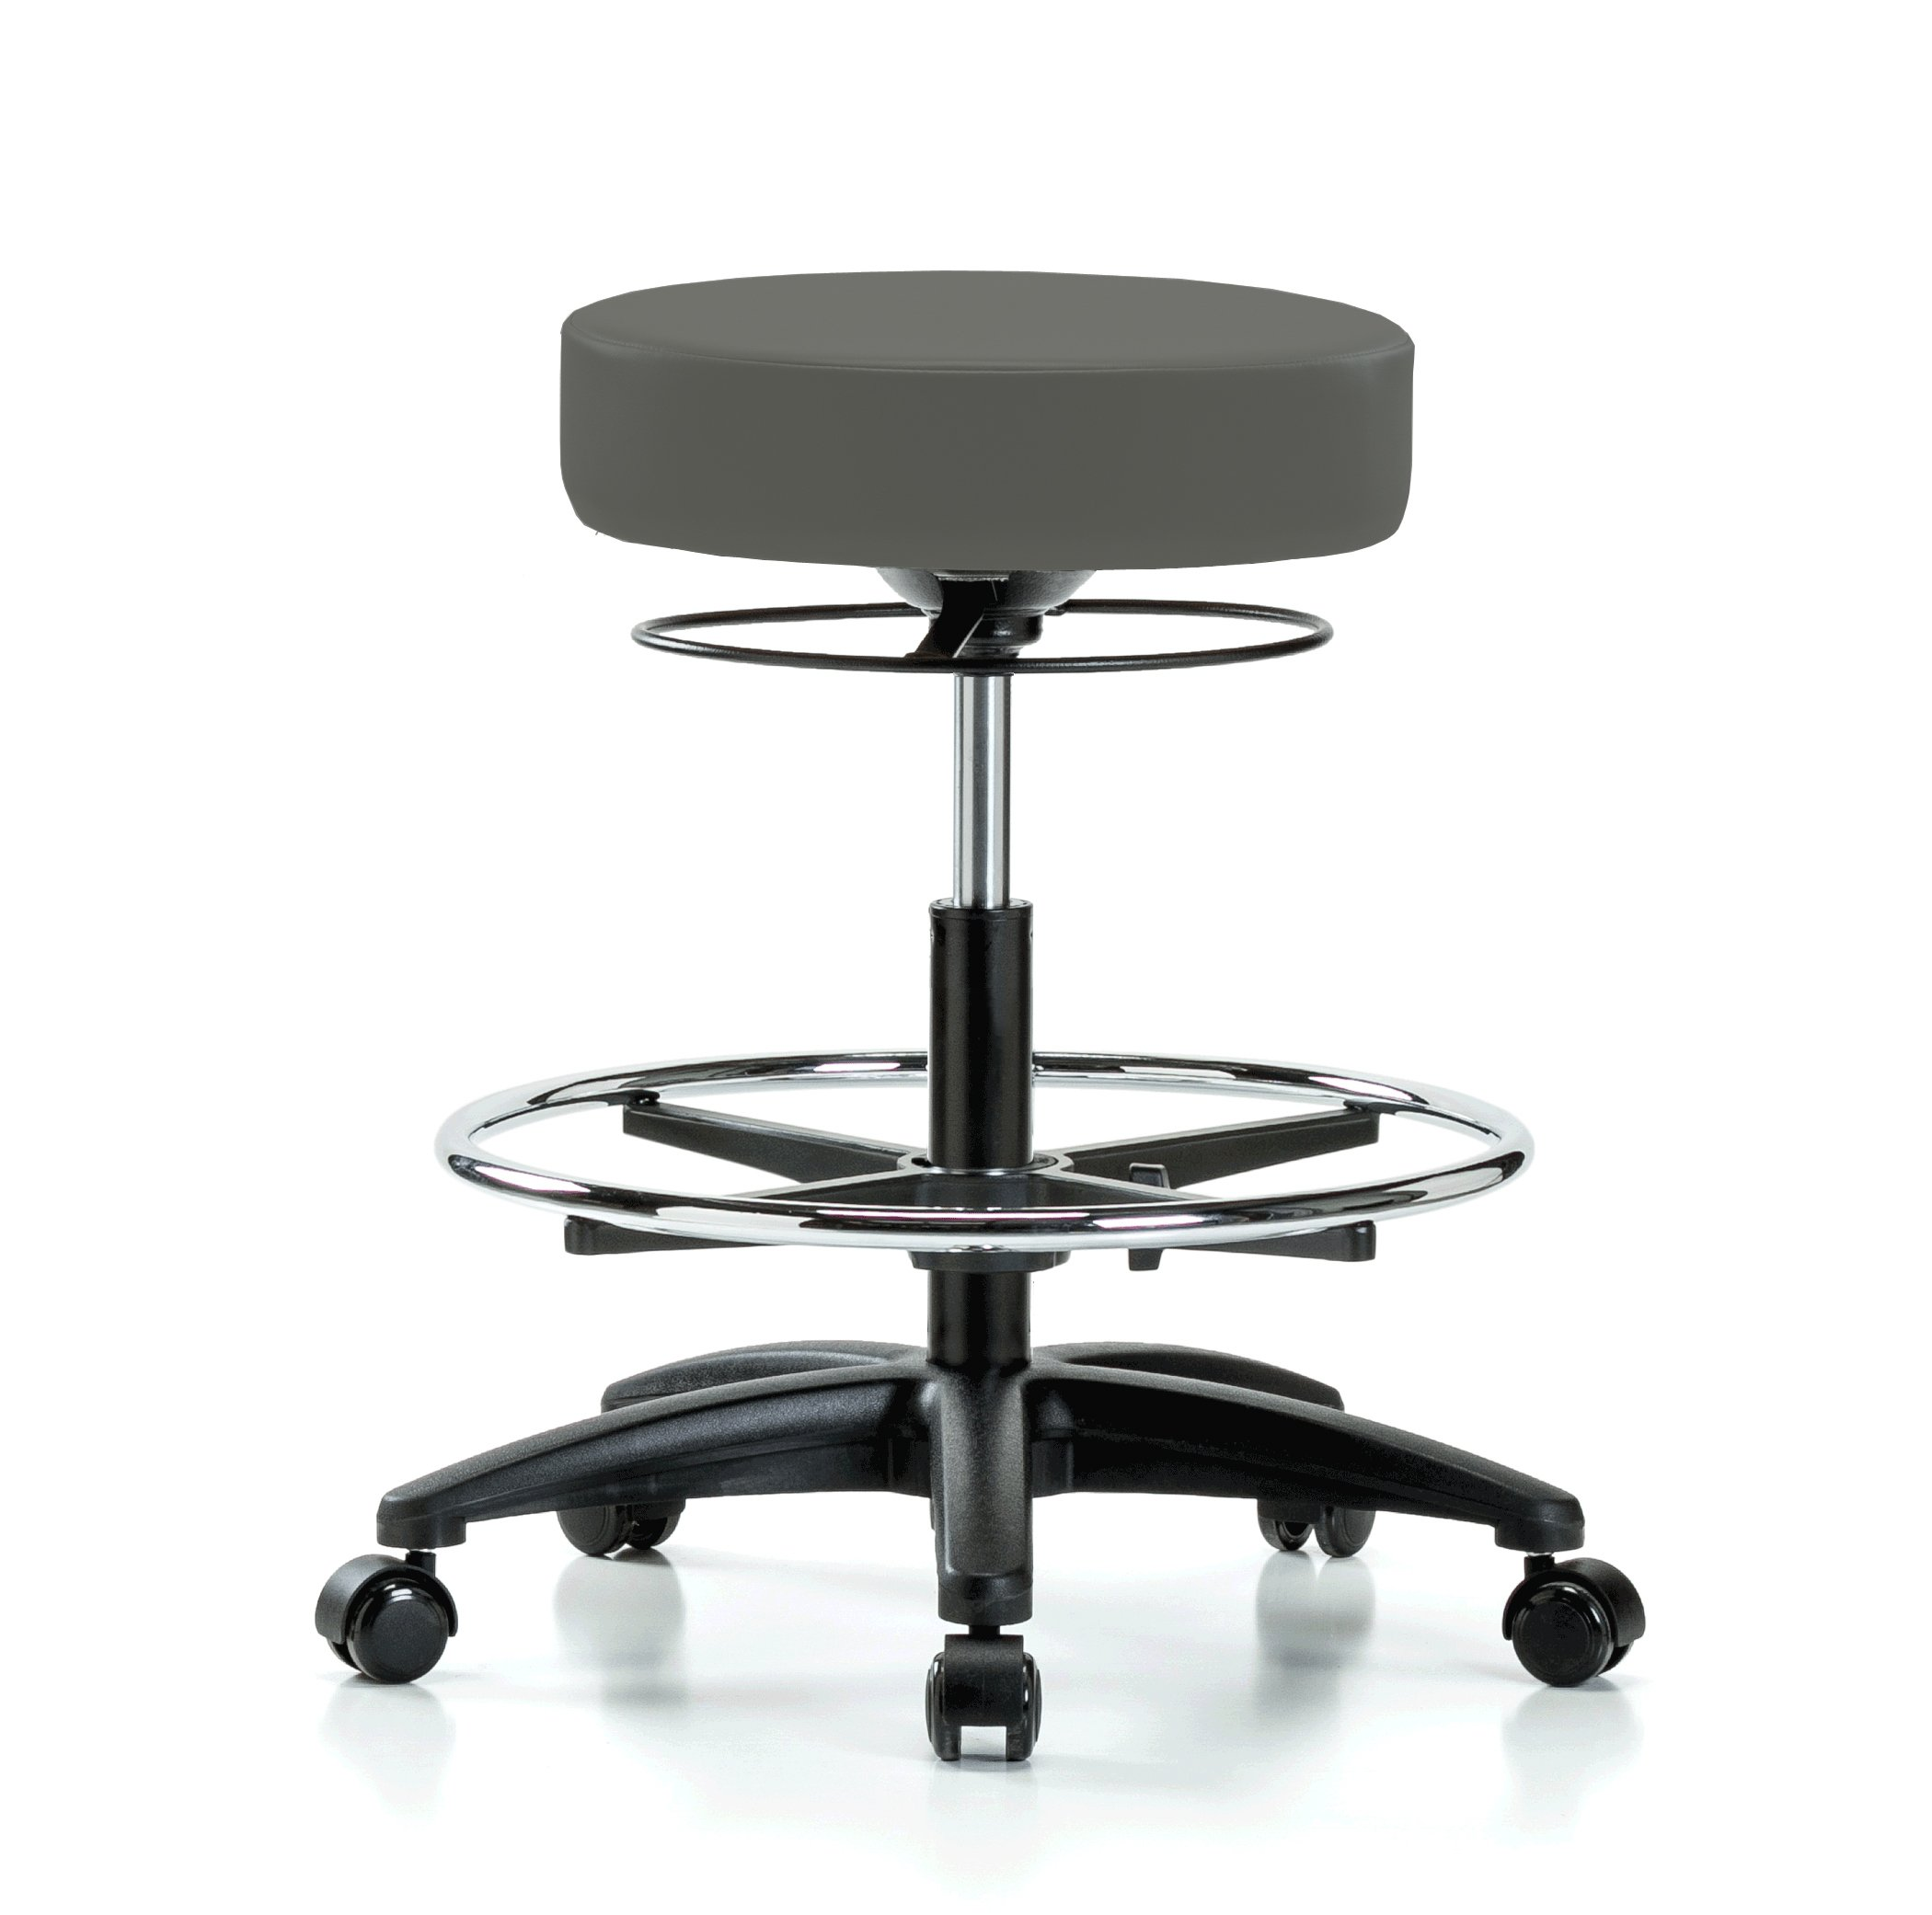 Perch Stella Rolling Adjustable Stool with Footring Medical Salon Spa Massage Tattoo Office 21'' - 28.5'' (Hard Floor Casters/Charcoal Vinyl)